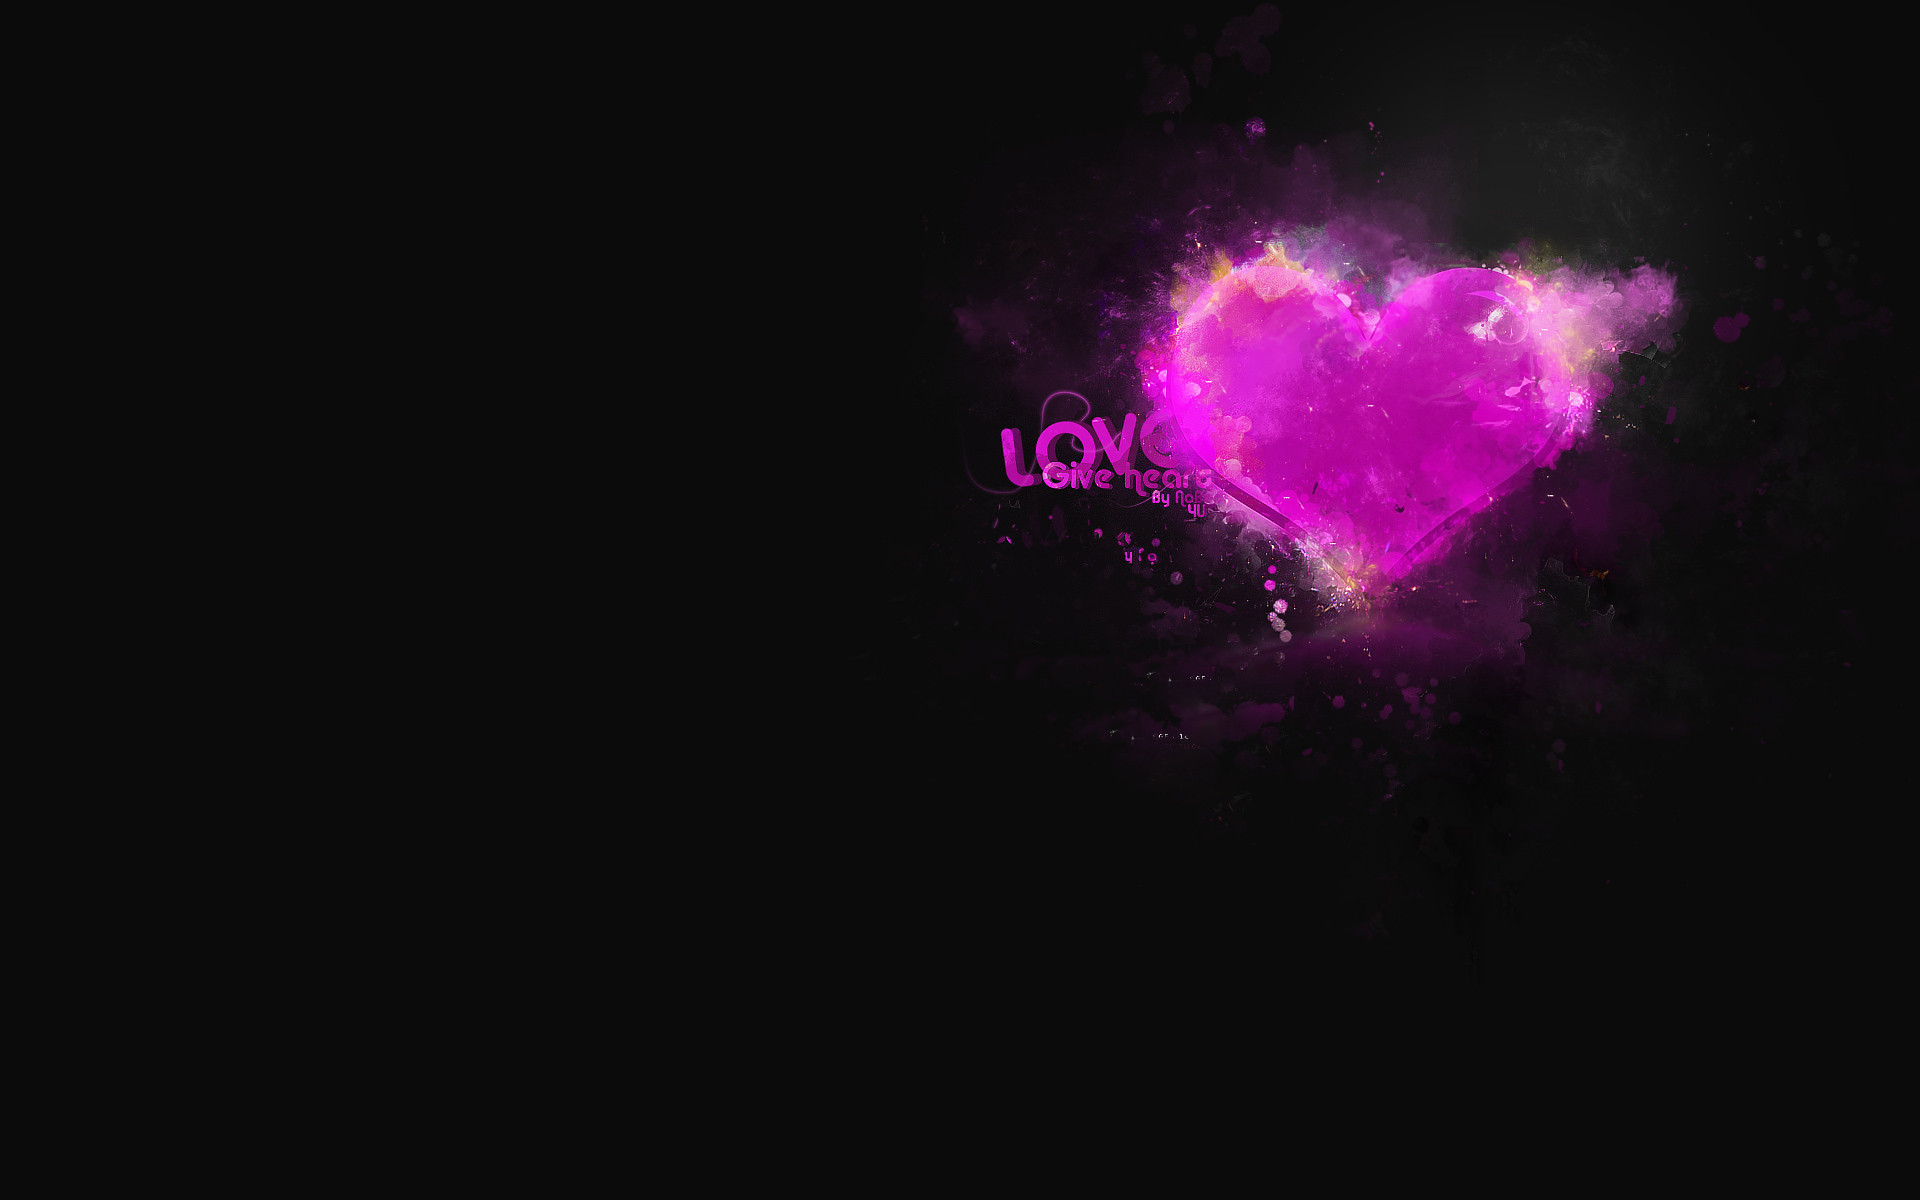 Love Background Black – HDWallie – HD Wallpapers